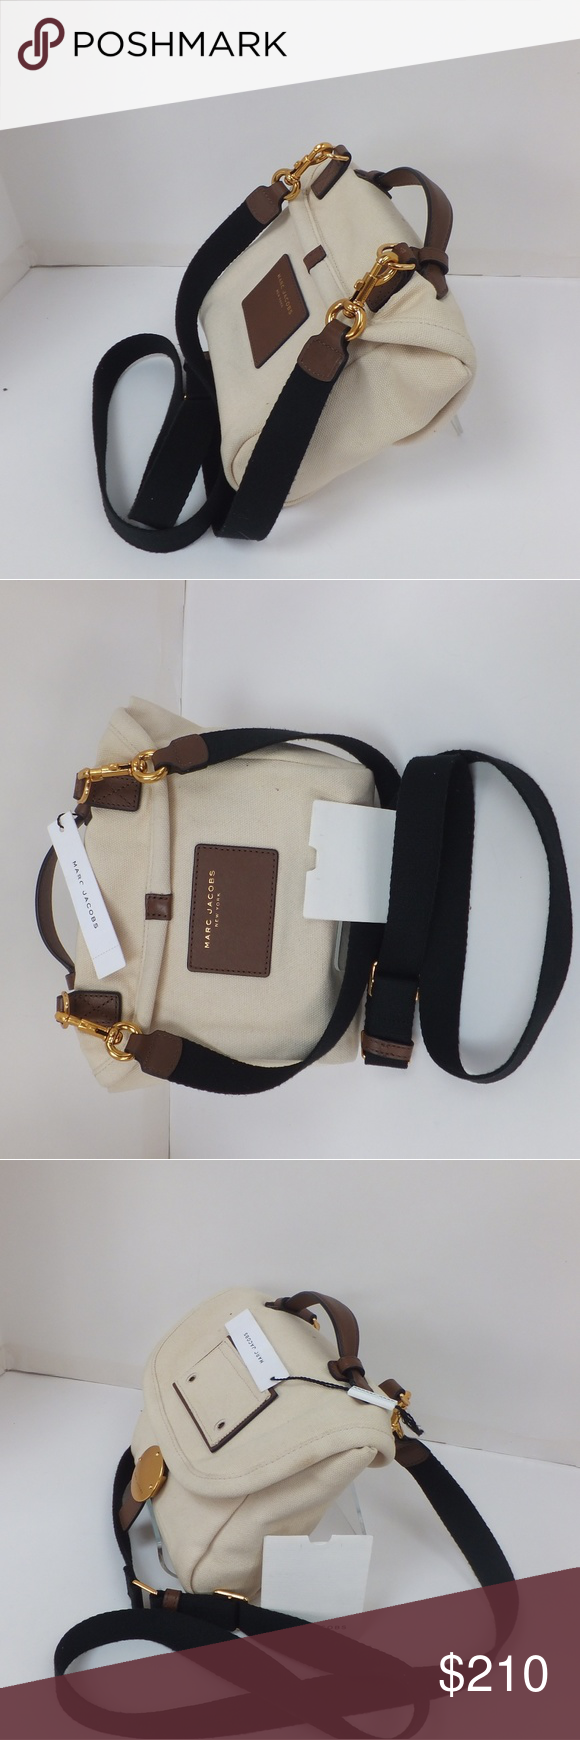 """Marc Jacobs?The Canvas Crossbody Marc Jacobs?The Canvas Crossbody  Dimensions  16"""" L x 6"""" W x 12"""" H (41cm x 16cm x 31cm)  Features ?Dual zip-top closures ?Front flap and slip pockets ?Kissing seams ?Collar pin detail ?Adjustable and convertible ?100% Cotton (Canvas)  ? Marc by Marc Jacobs Bags Crossbody Bags"""